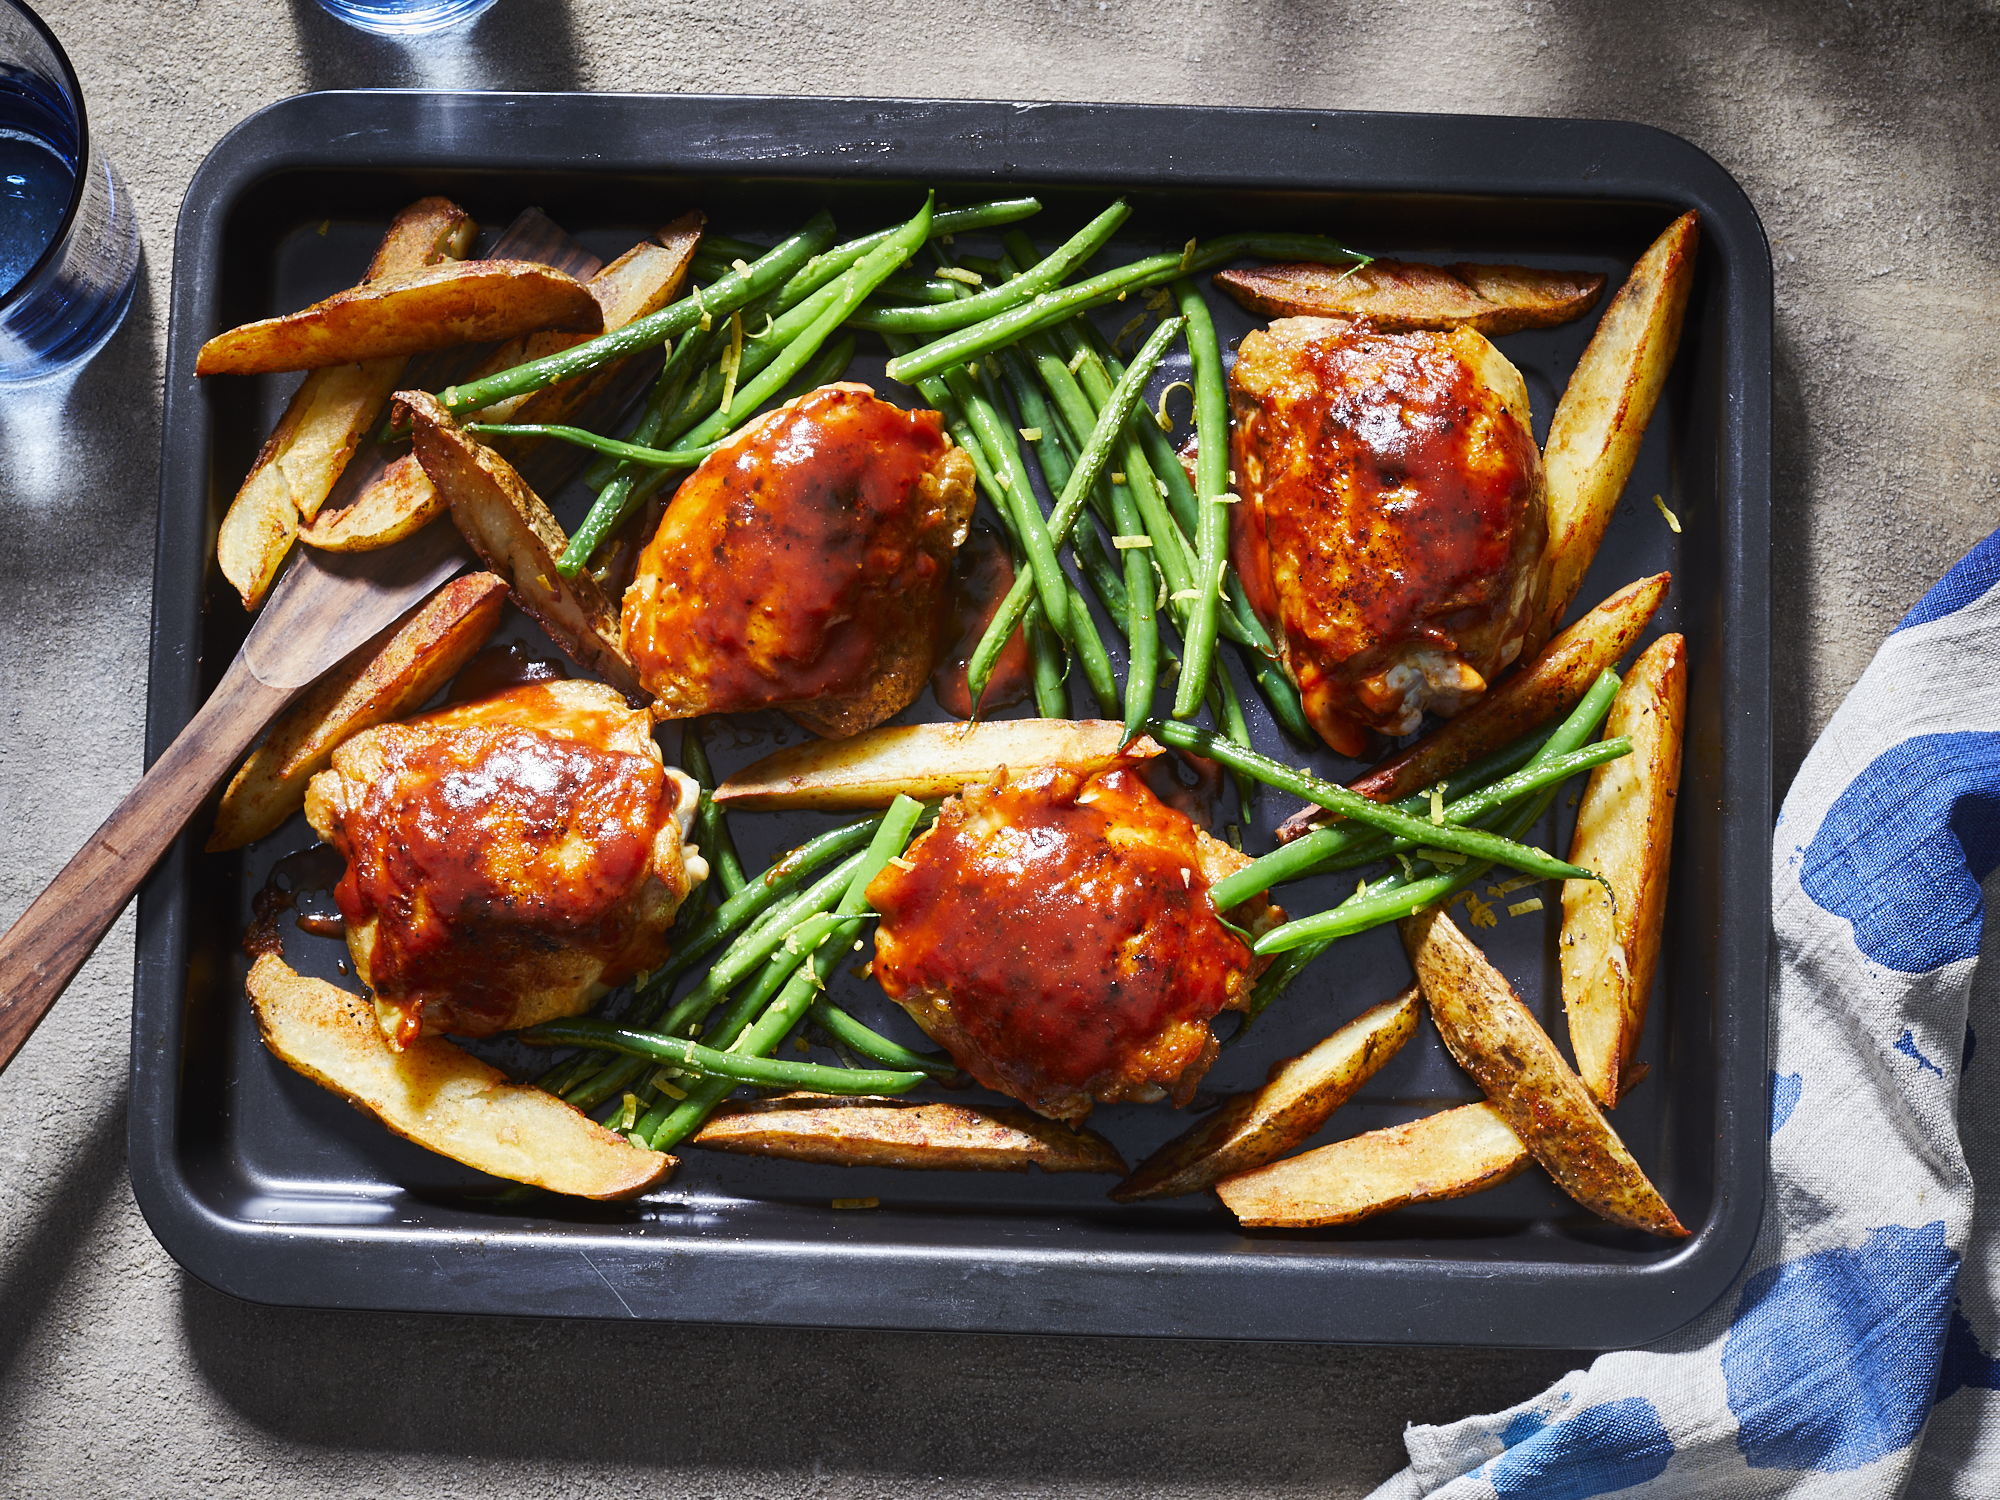 Sheet Pan BBQ Chicken Thighs with Green Beans and Potatoes